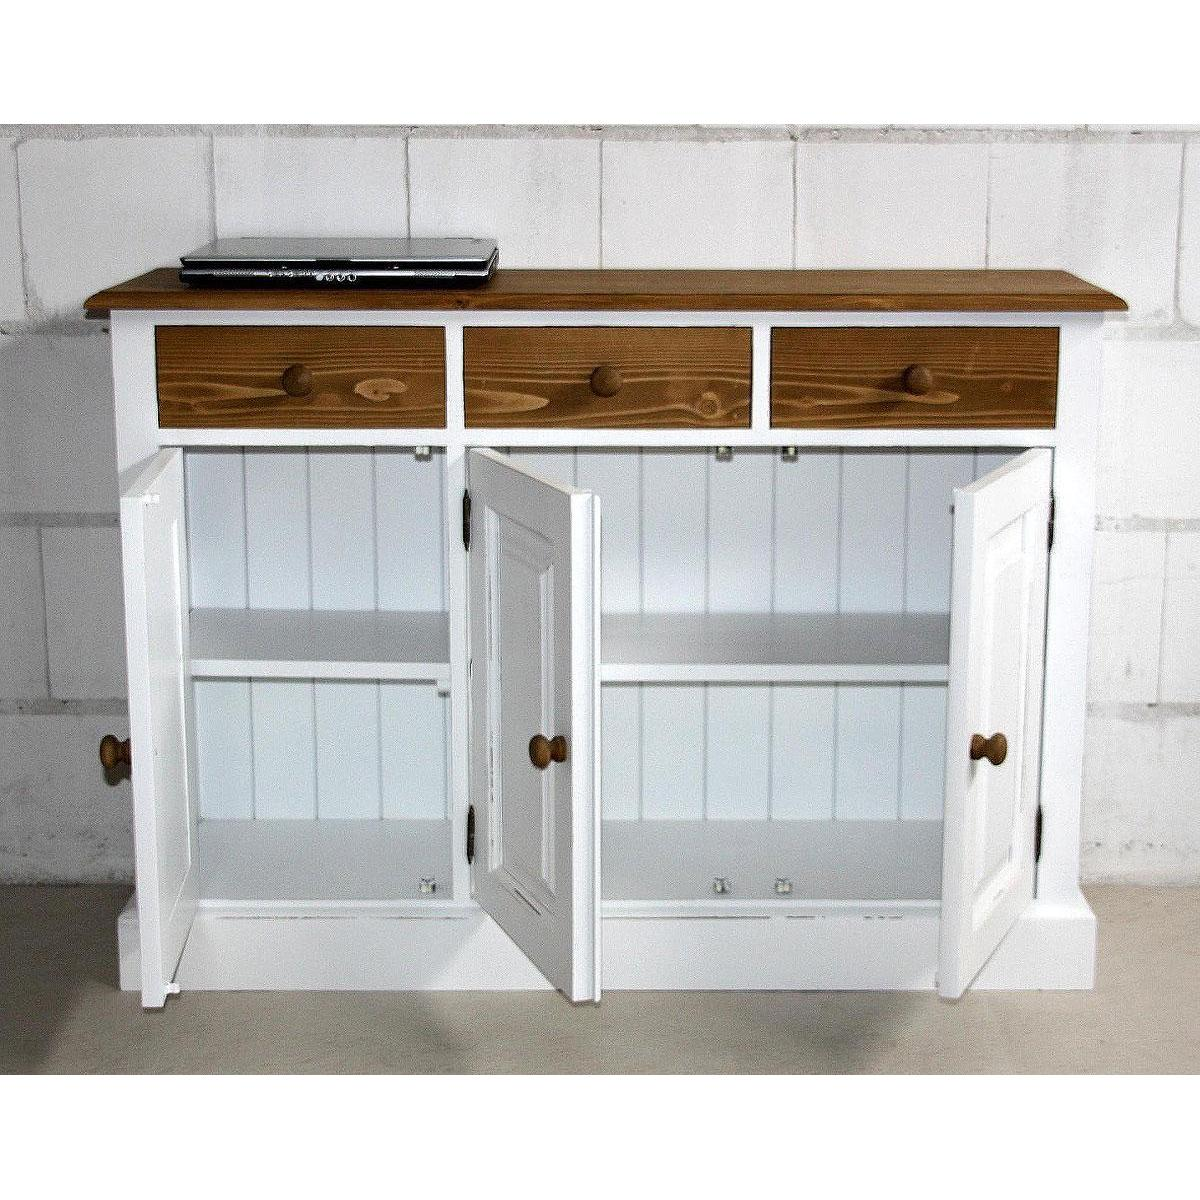 massivholz anrichte sideboard flur kommode schrank shabby antik wei holz massiv ebay. Black Bedroom Furniture Sets. Home Design Ideas